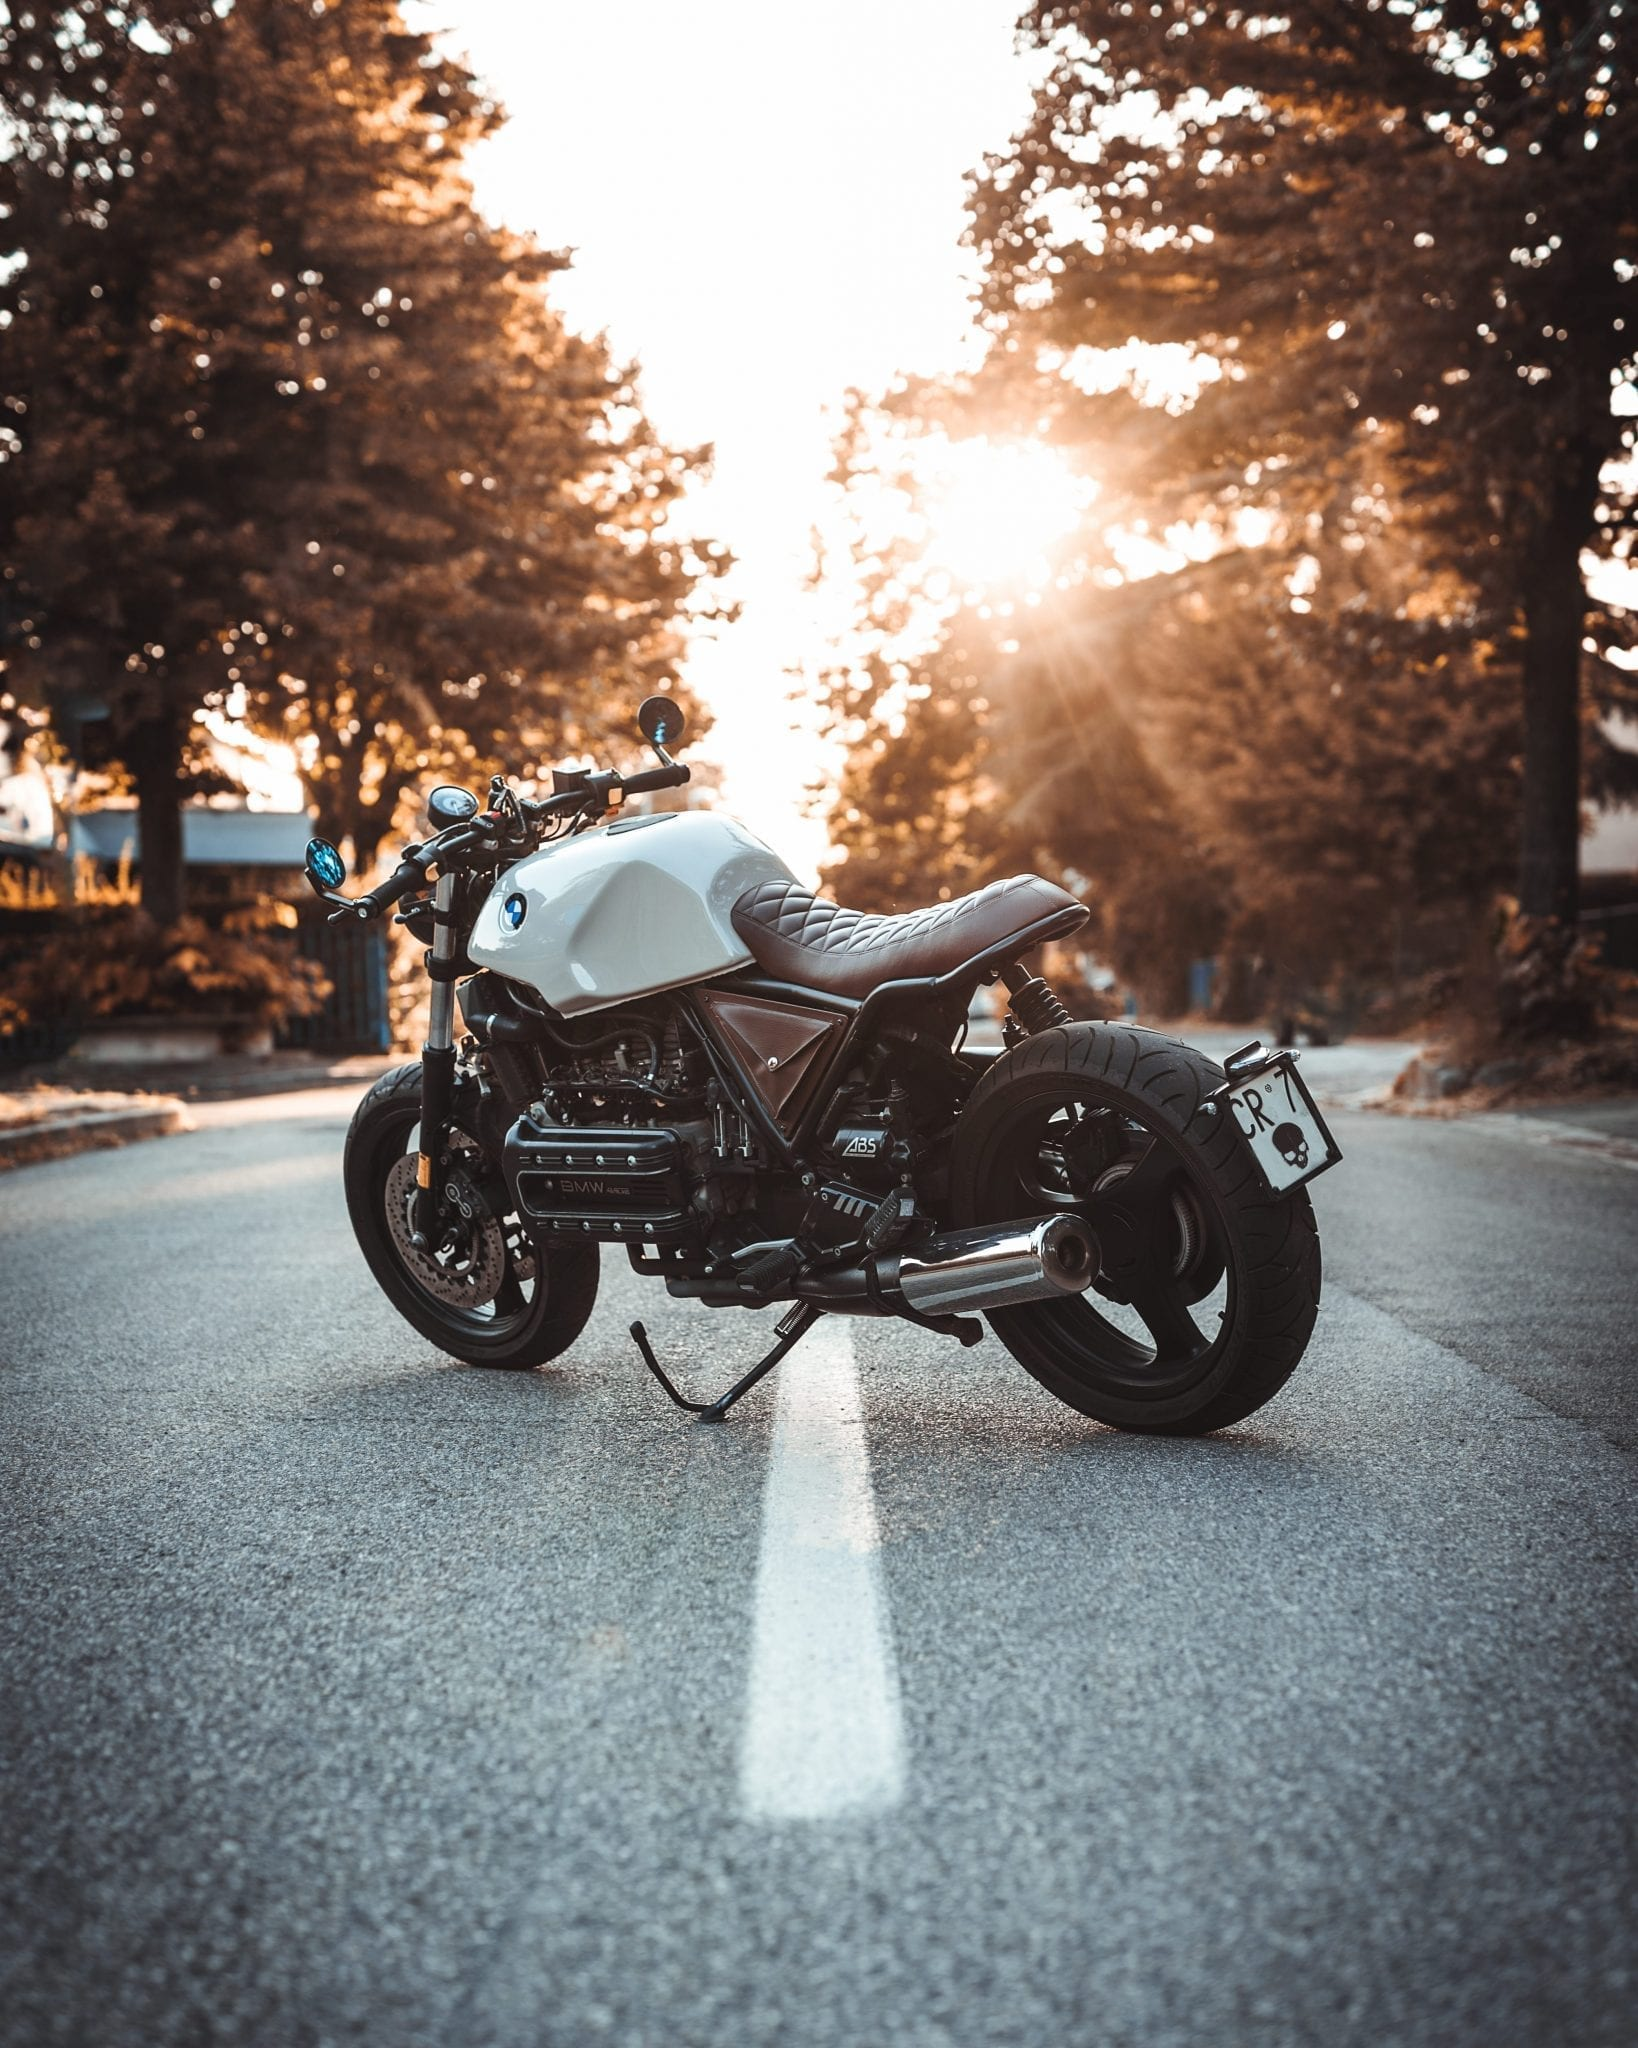 Motorcyclist Receives Settlement after Accident Caused by Company Driver